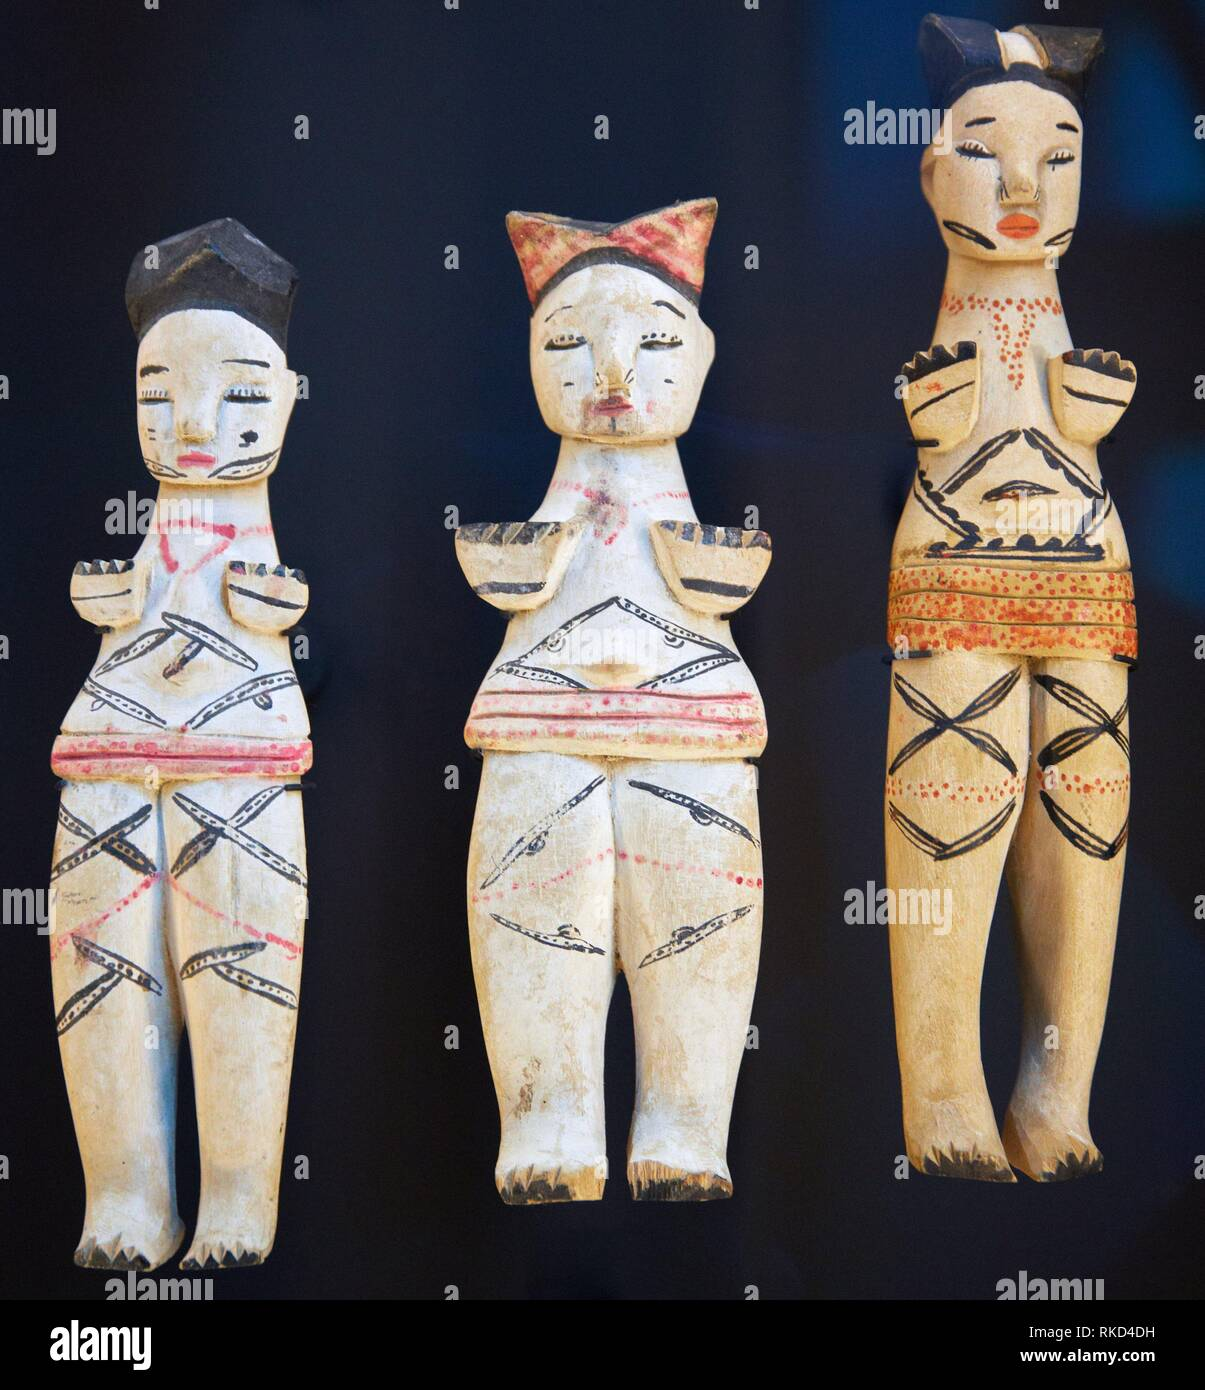 Fertility dolls. Population Igbo and Ibibio. Nigeria. Musée du Quai Branly museum, specialised for primitive or tribal arts, architect Jean Nouvel. - Stock Image